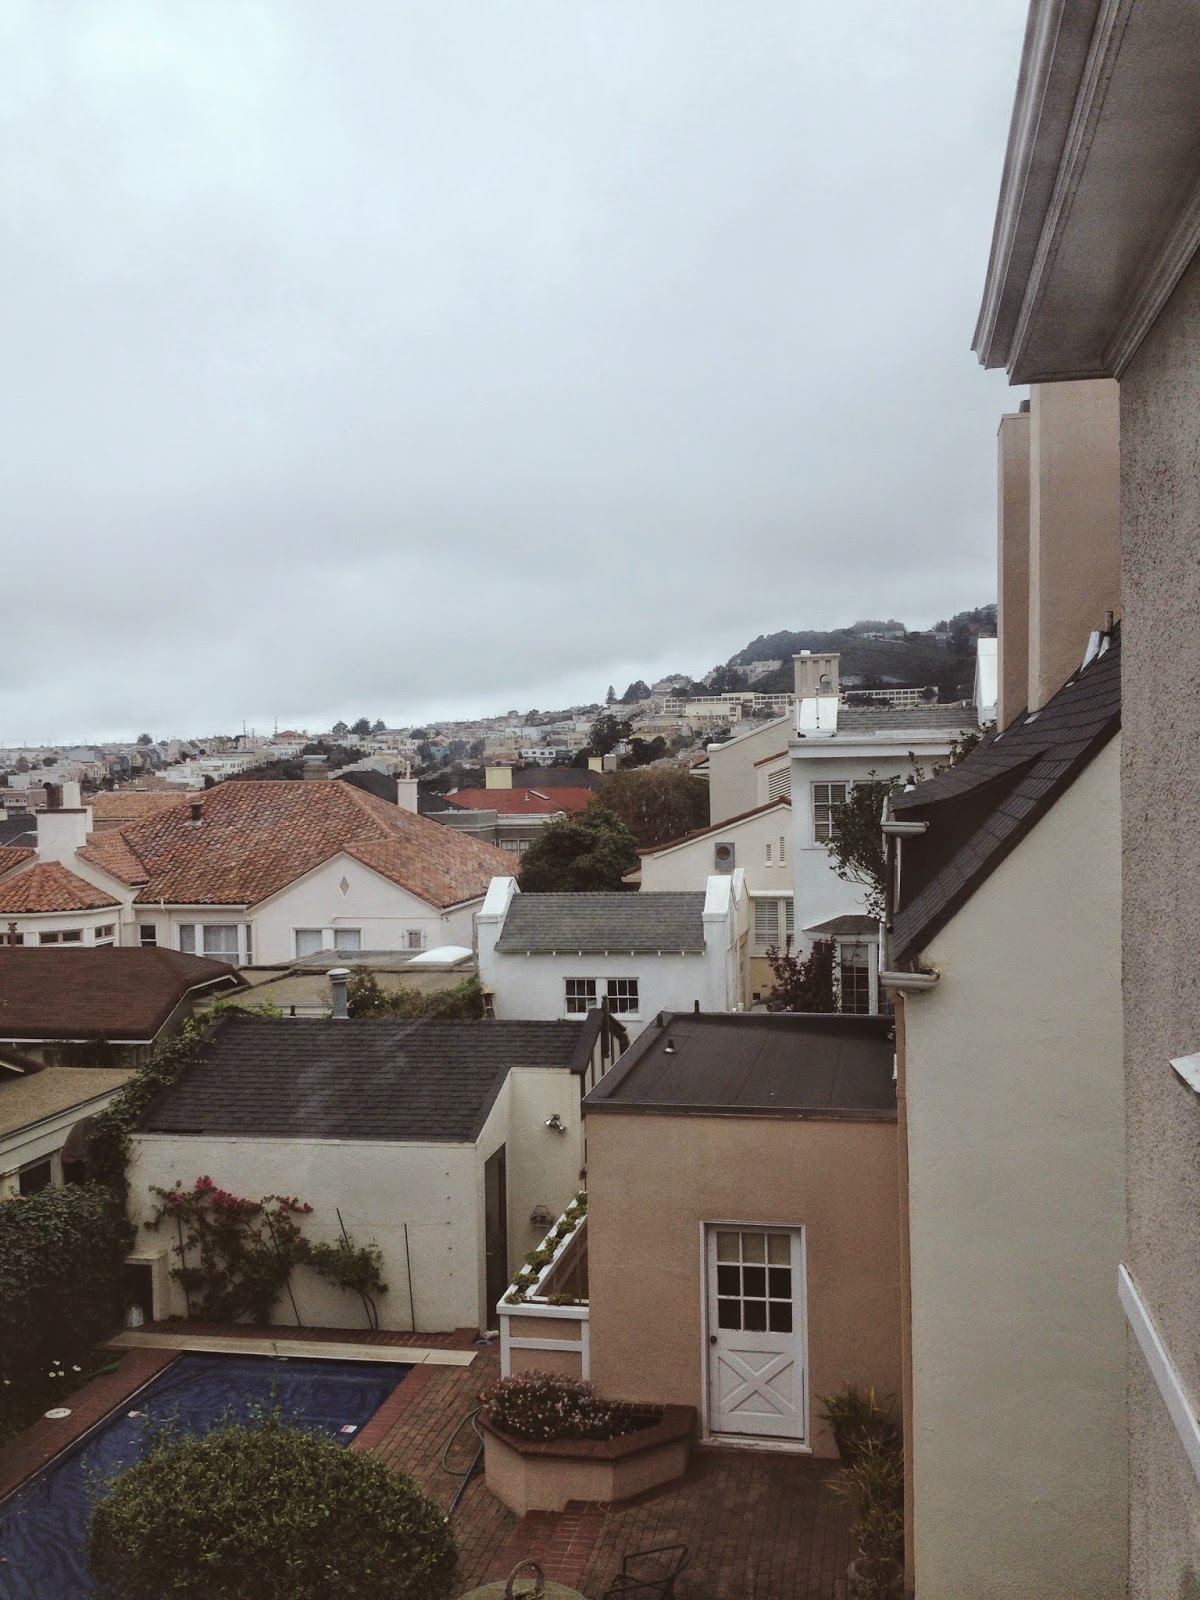 view of rooftops in San Francisco